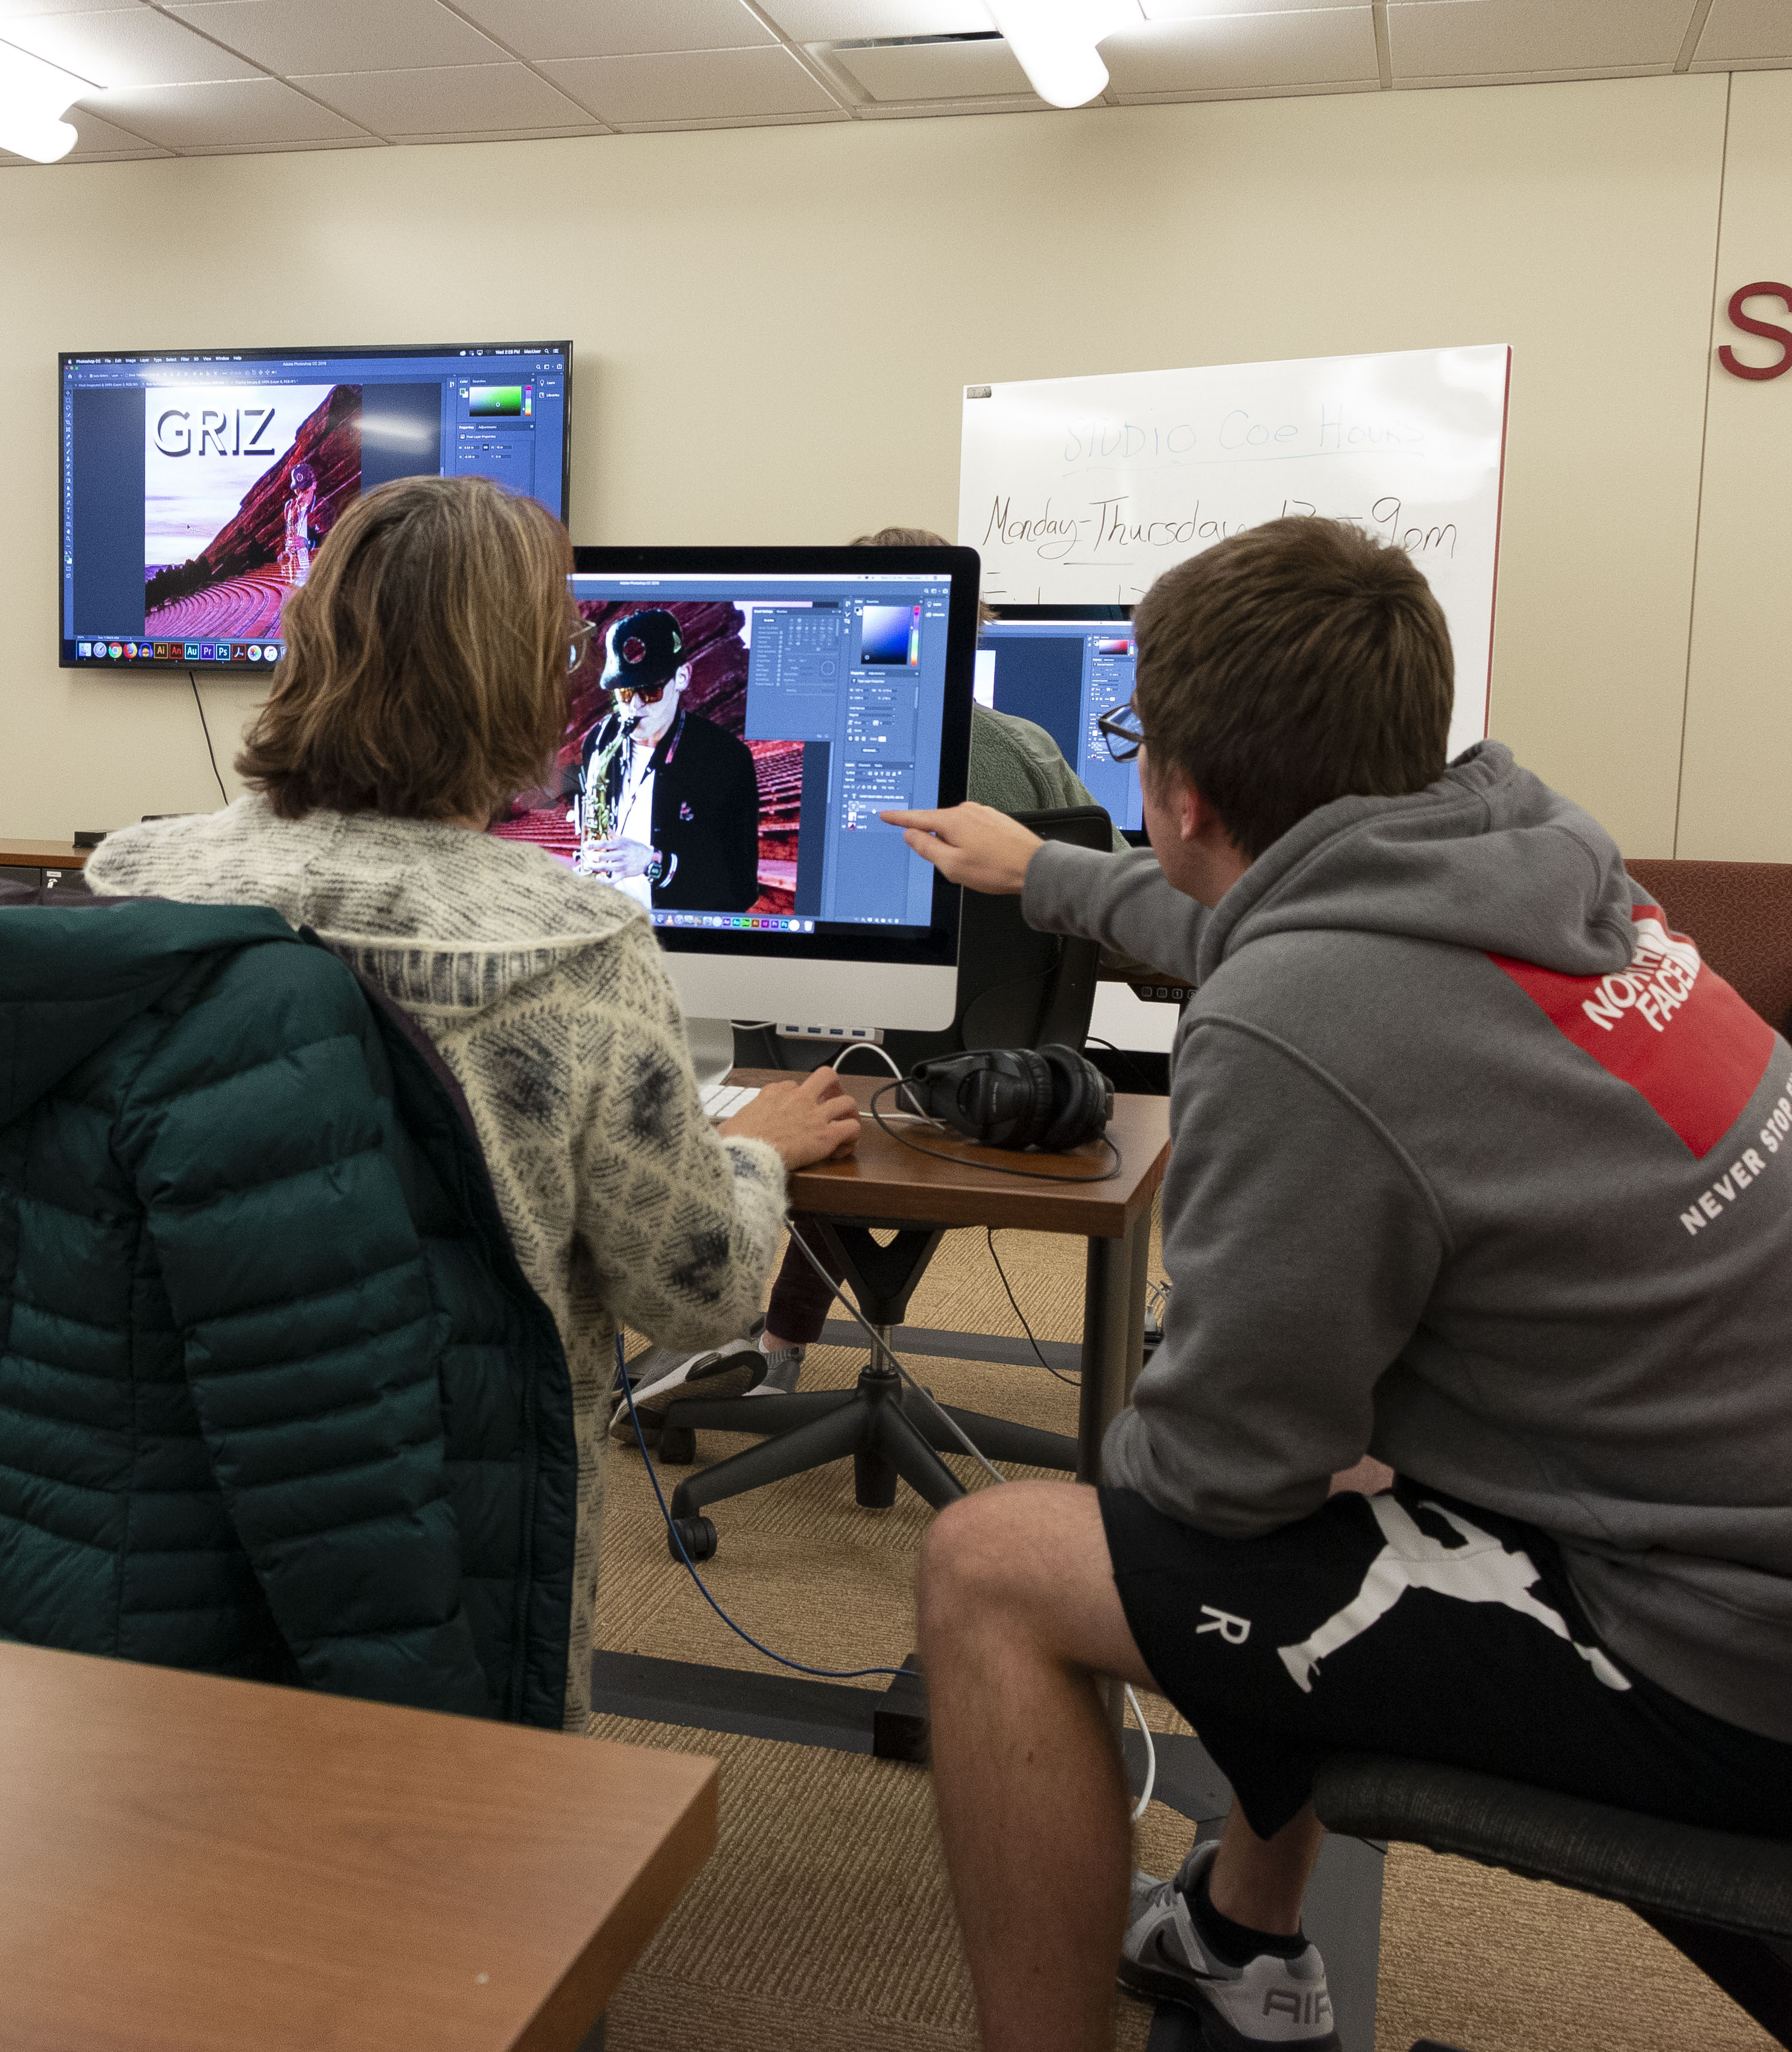 A student staff member is helping a patron use Photoshop.